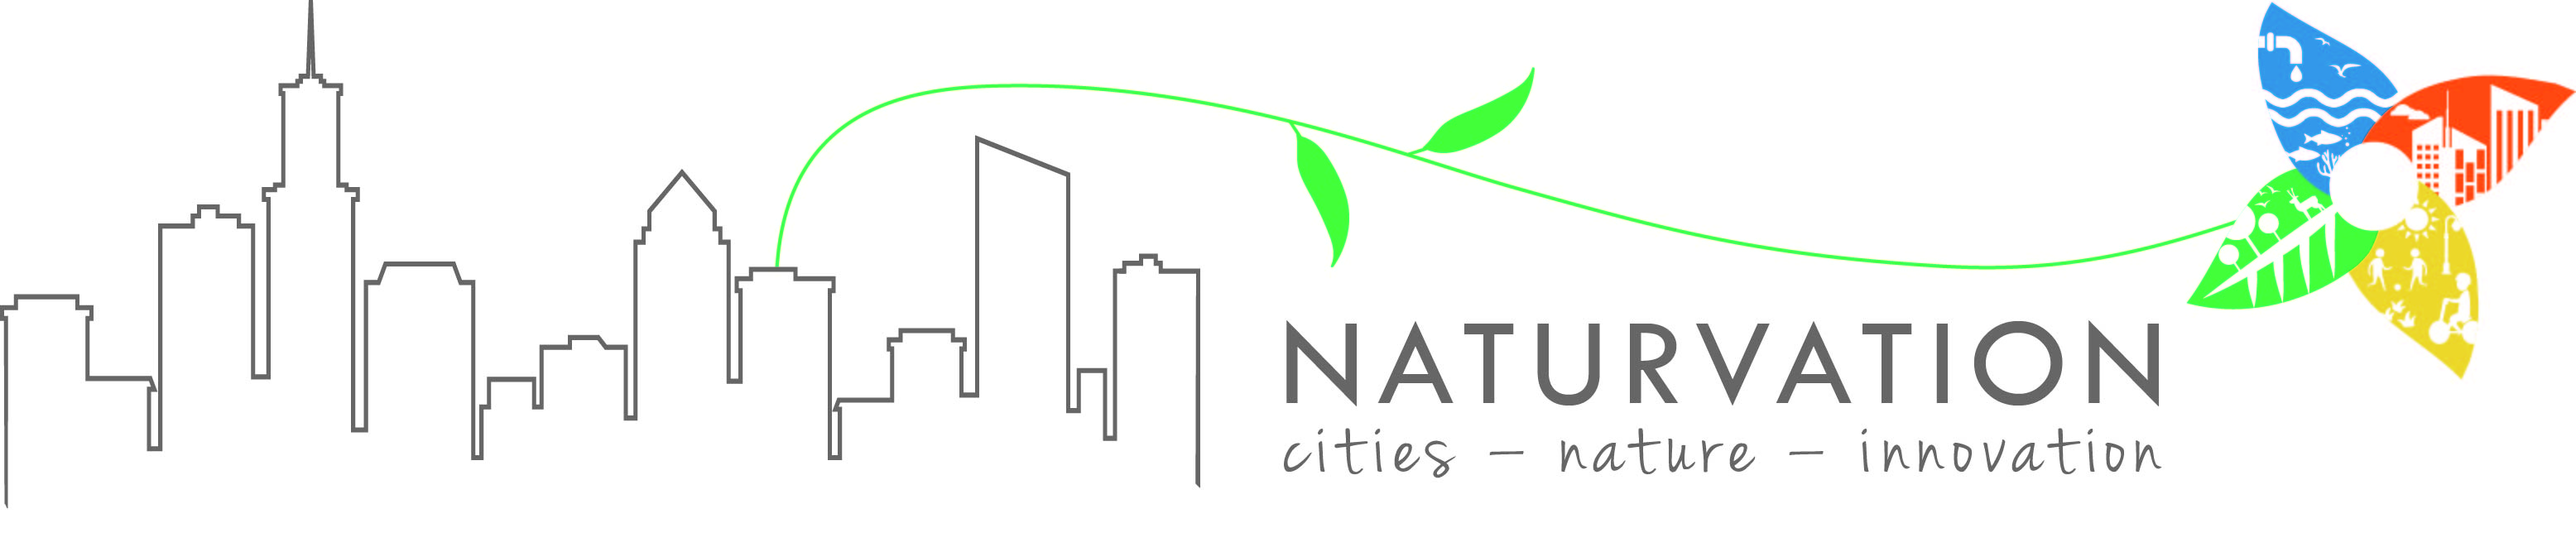 Naturvation_logo w gray city outline